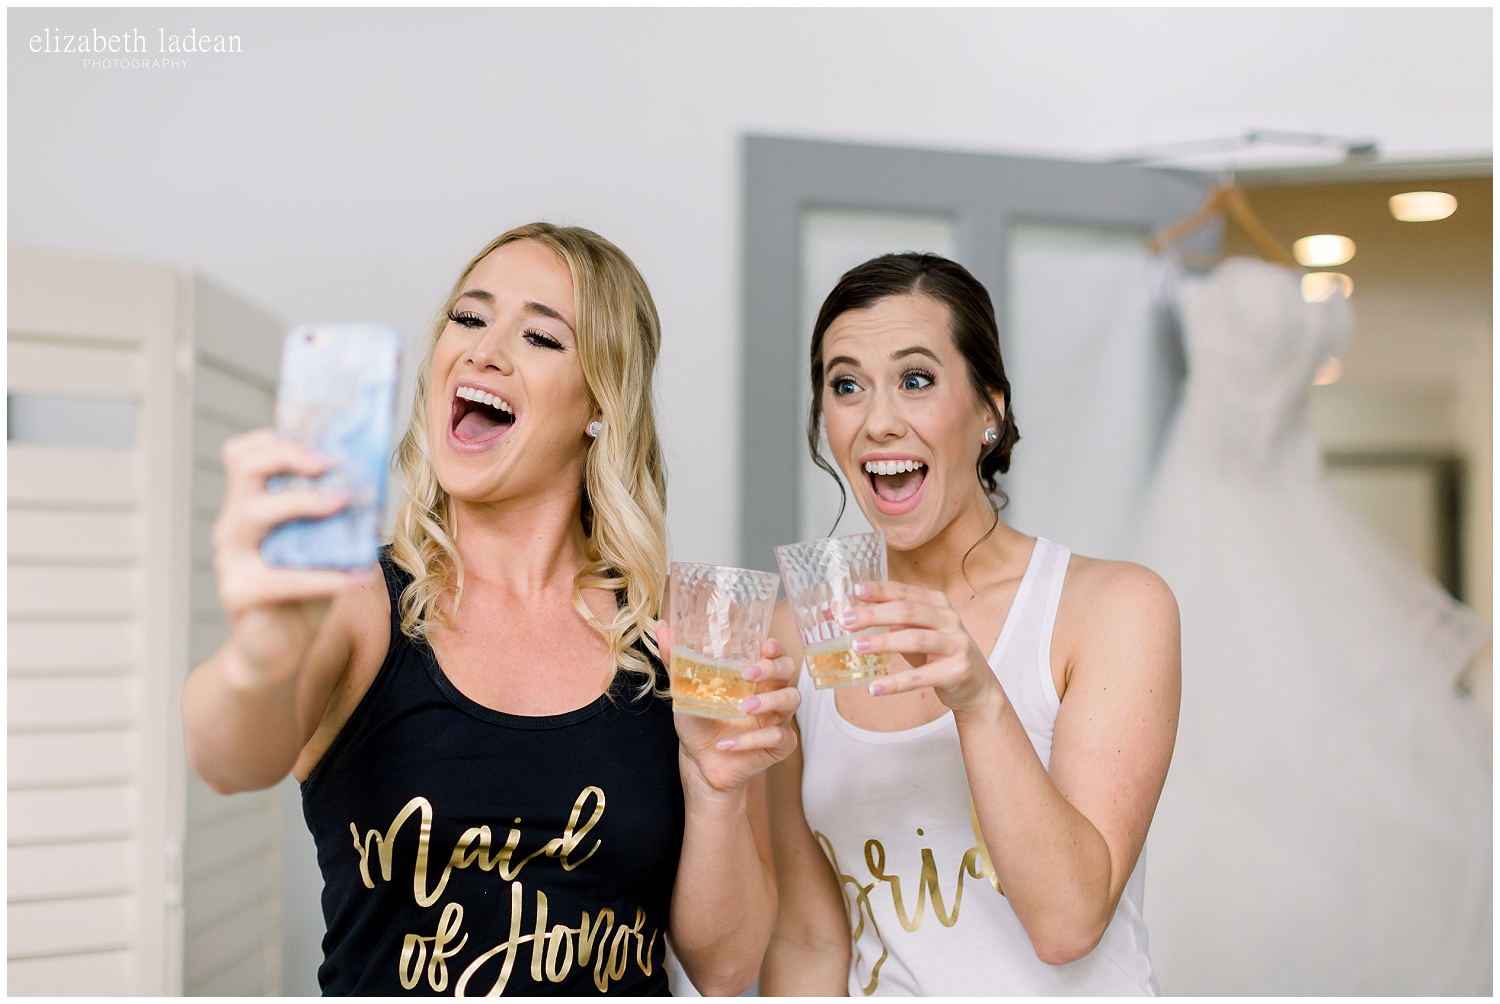 -behind-the-scenes-of-a-wedding-photographer-2018-elizabeth-ladean-photography-photo_3455.jpg